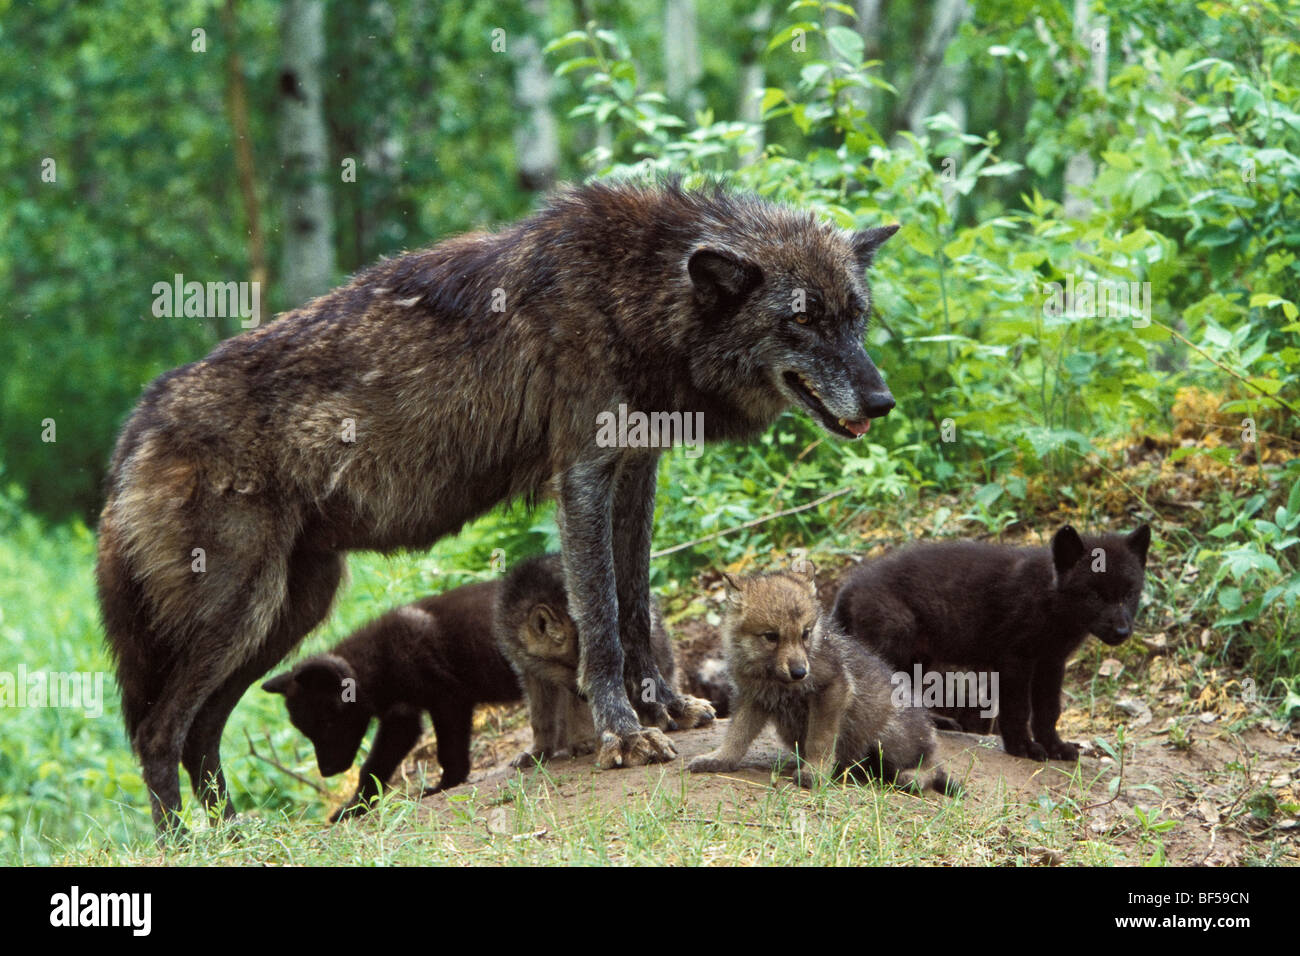 Wolf (Canis lupus) with pups at den, North America - Stock Image